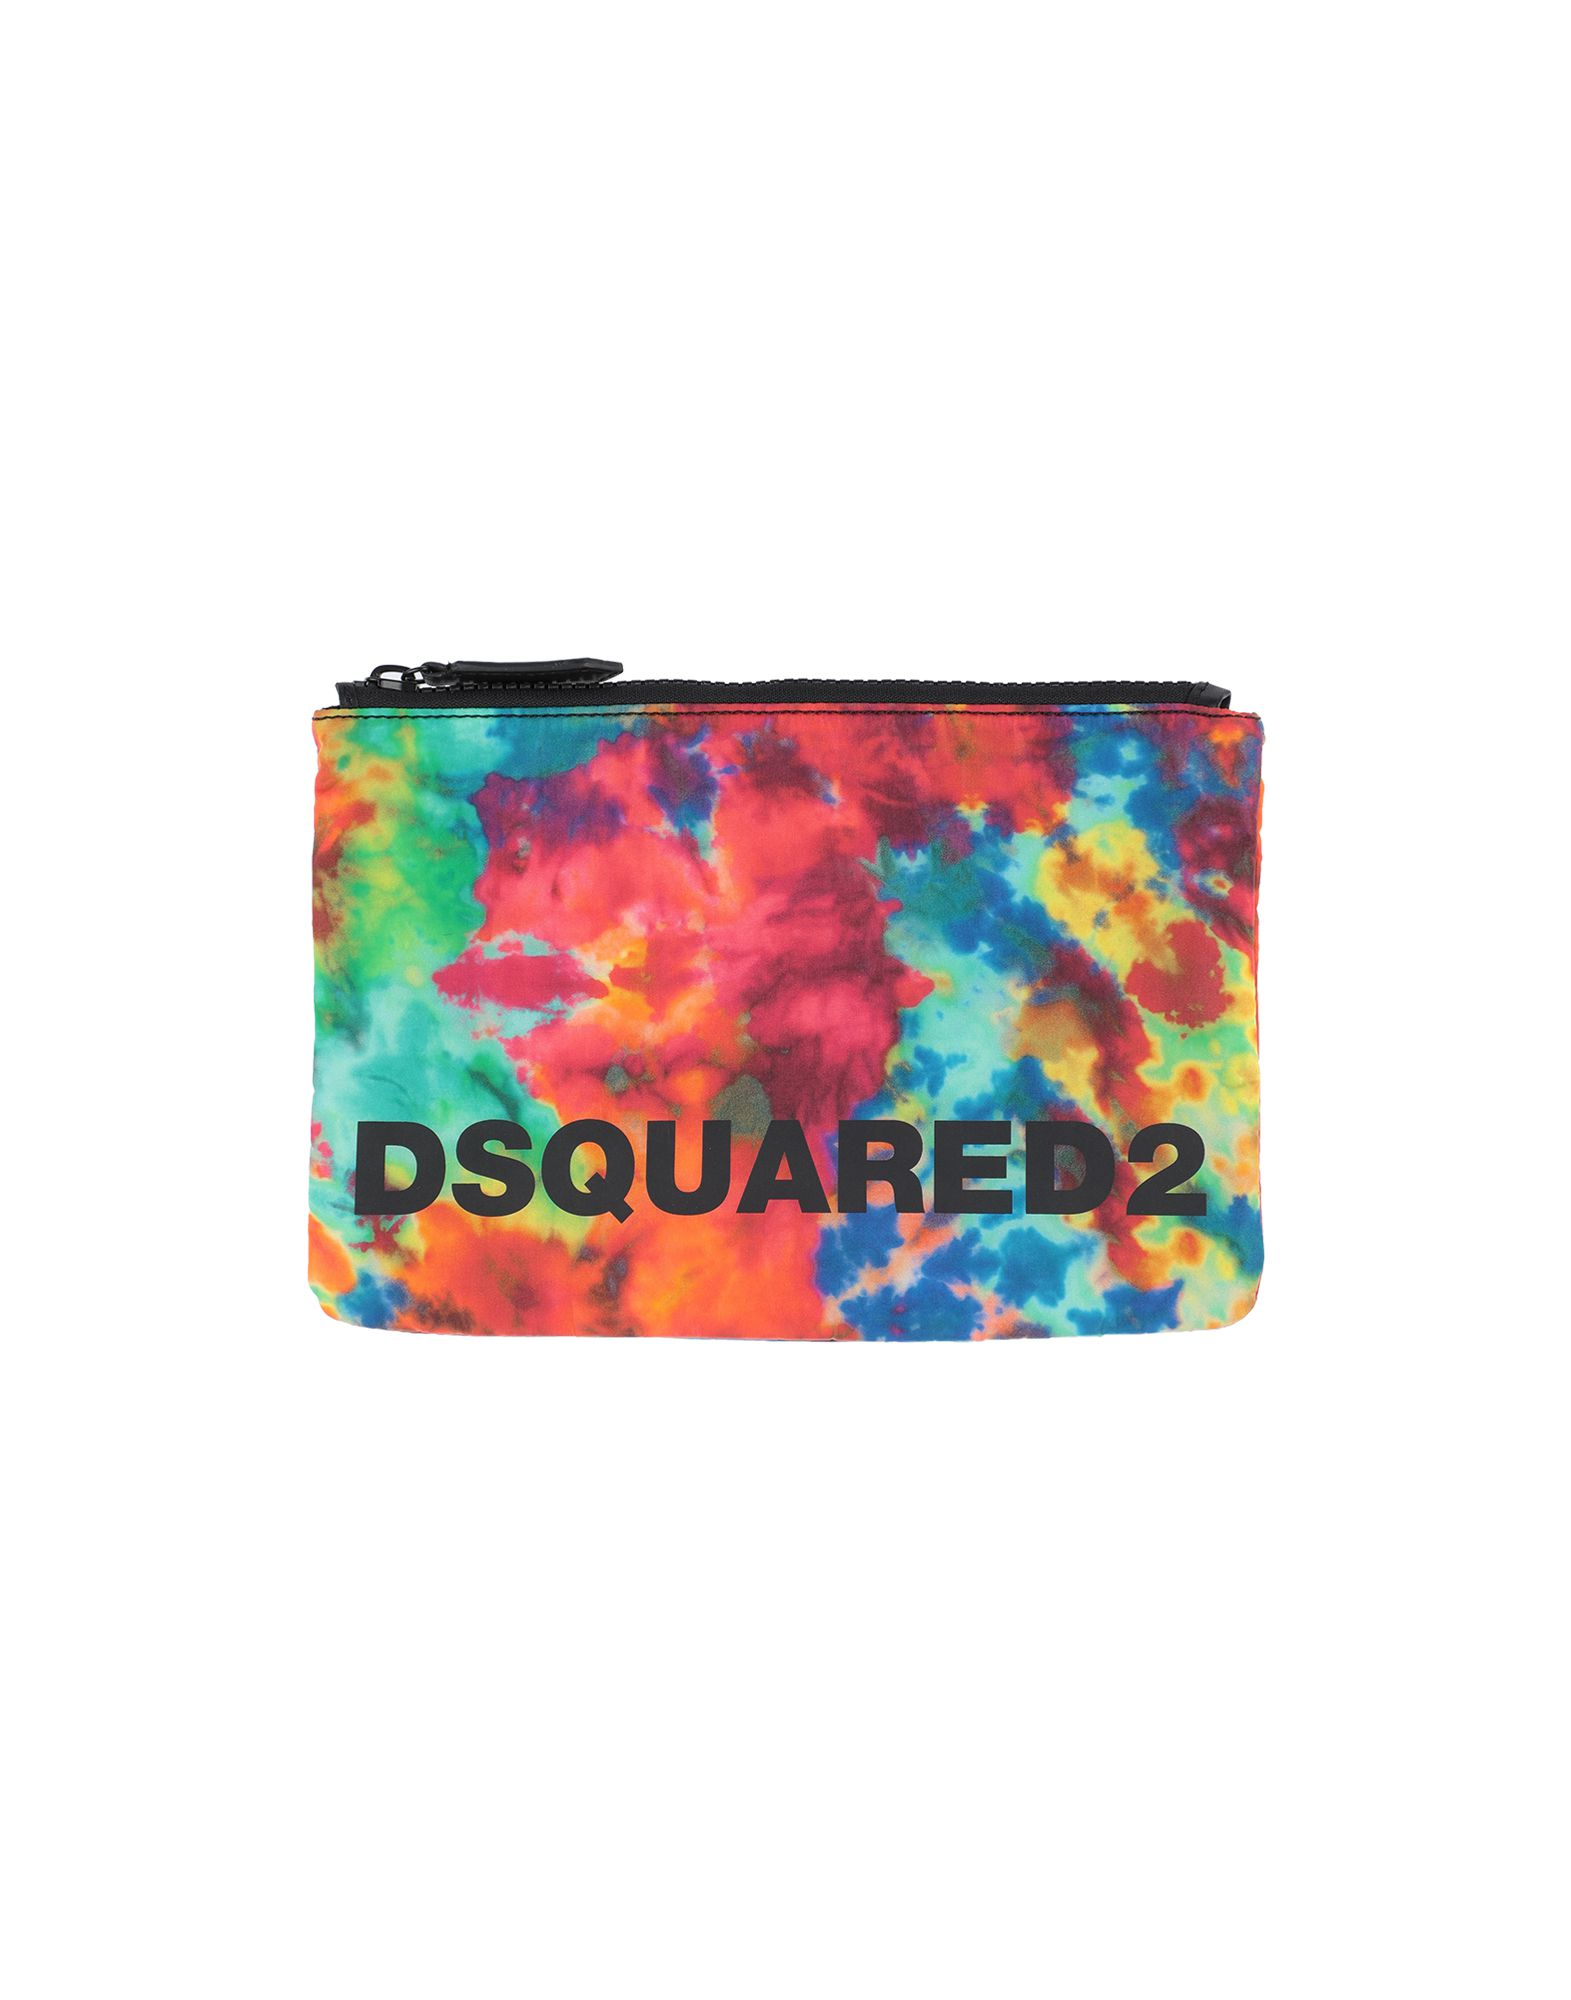 DSQUARED2 Pouches. techno fabric, logo, multicolor pattern, zipper closure, fully lined. Nylon